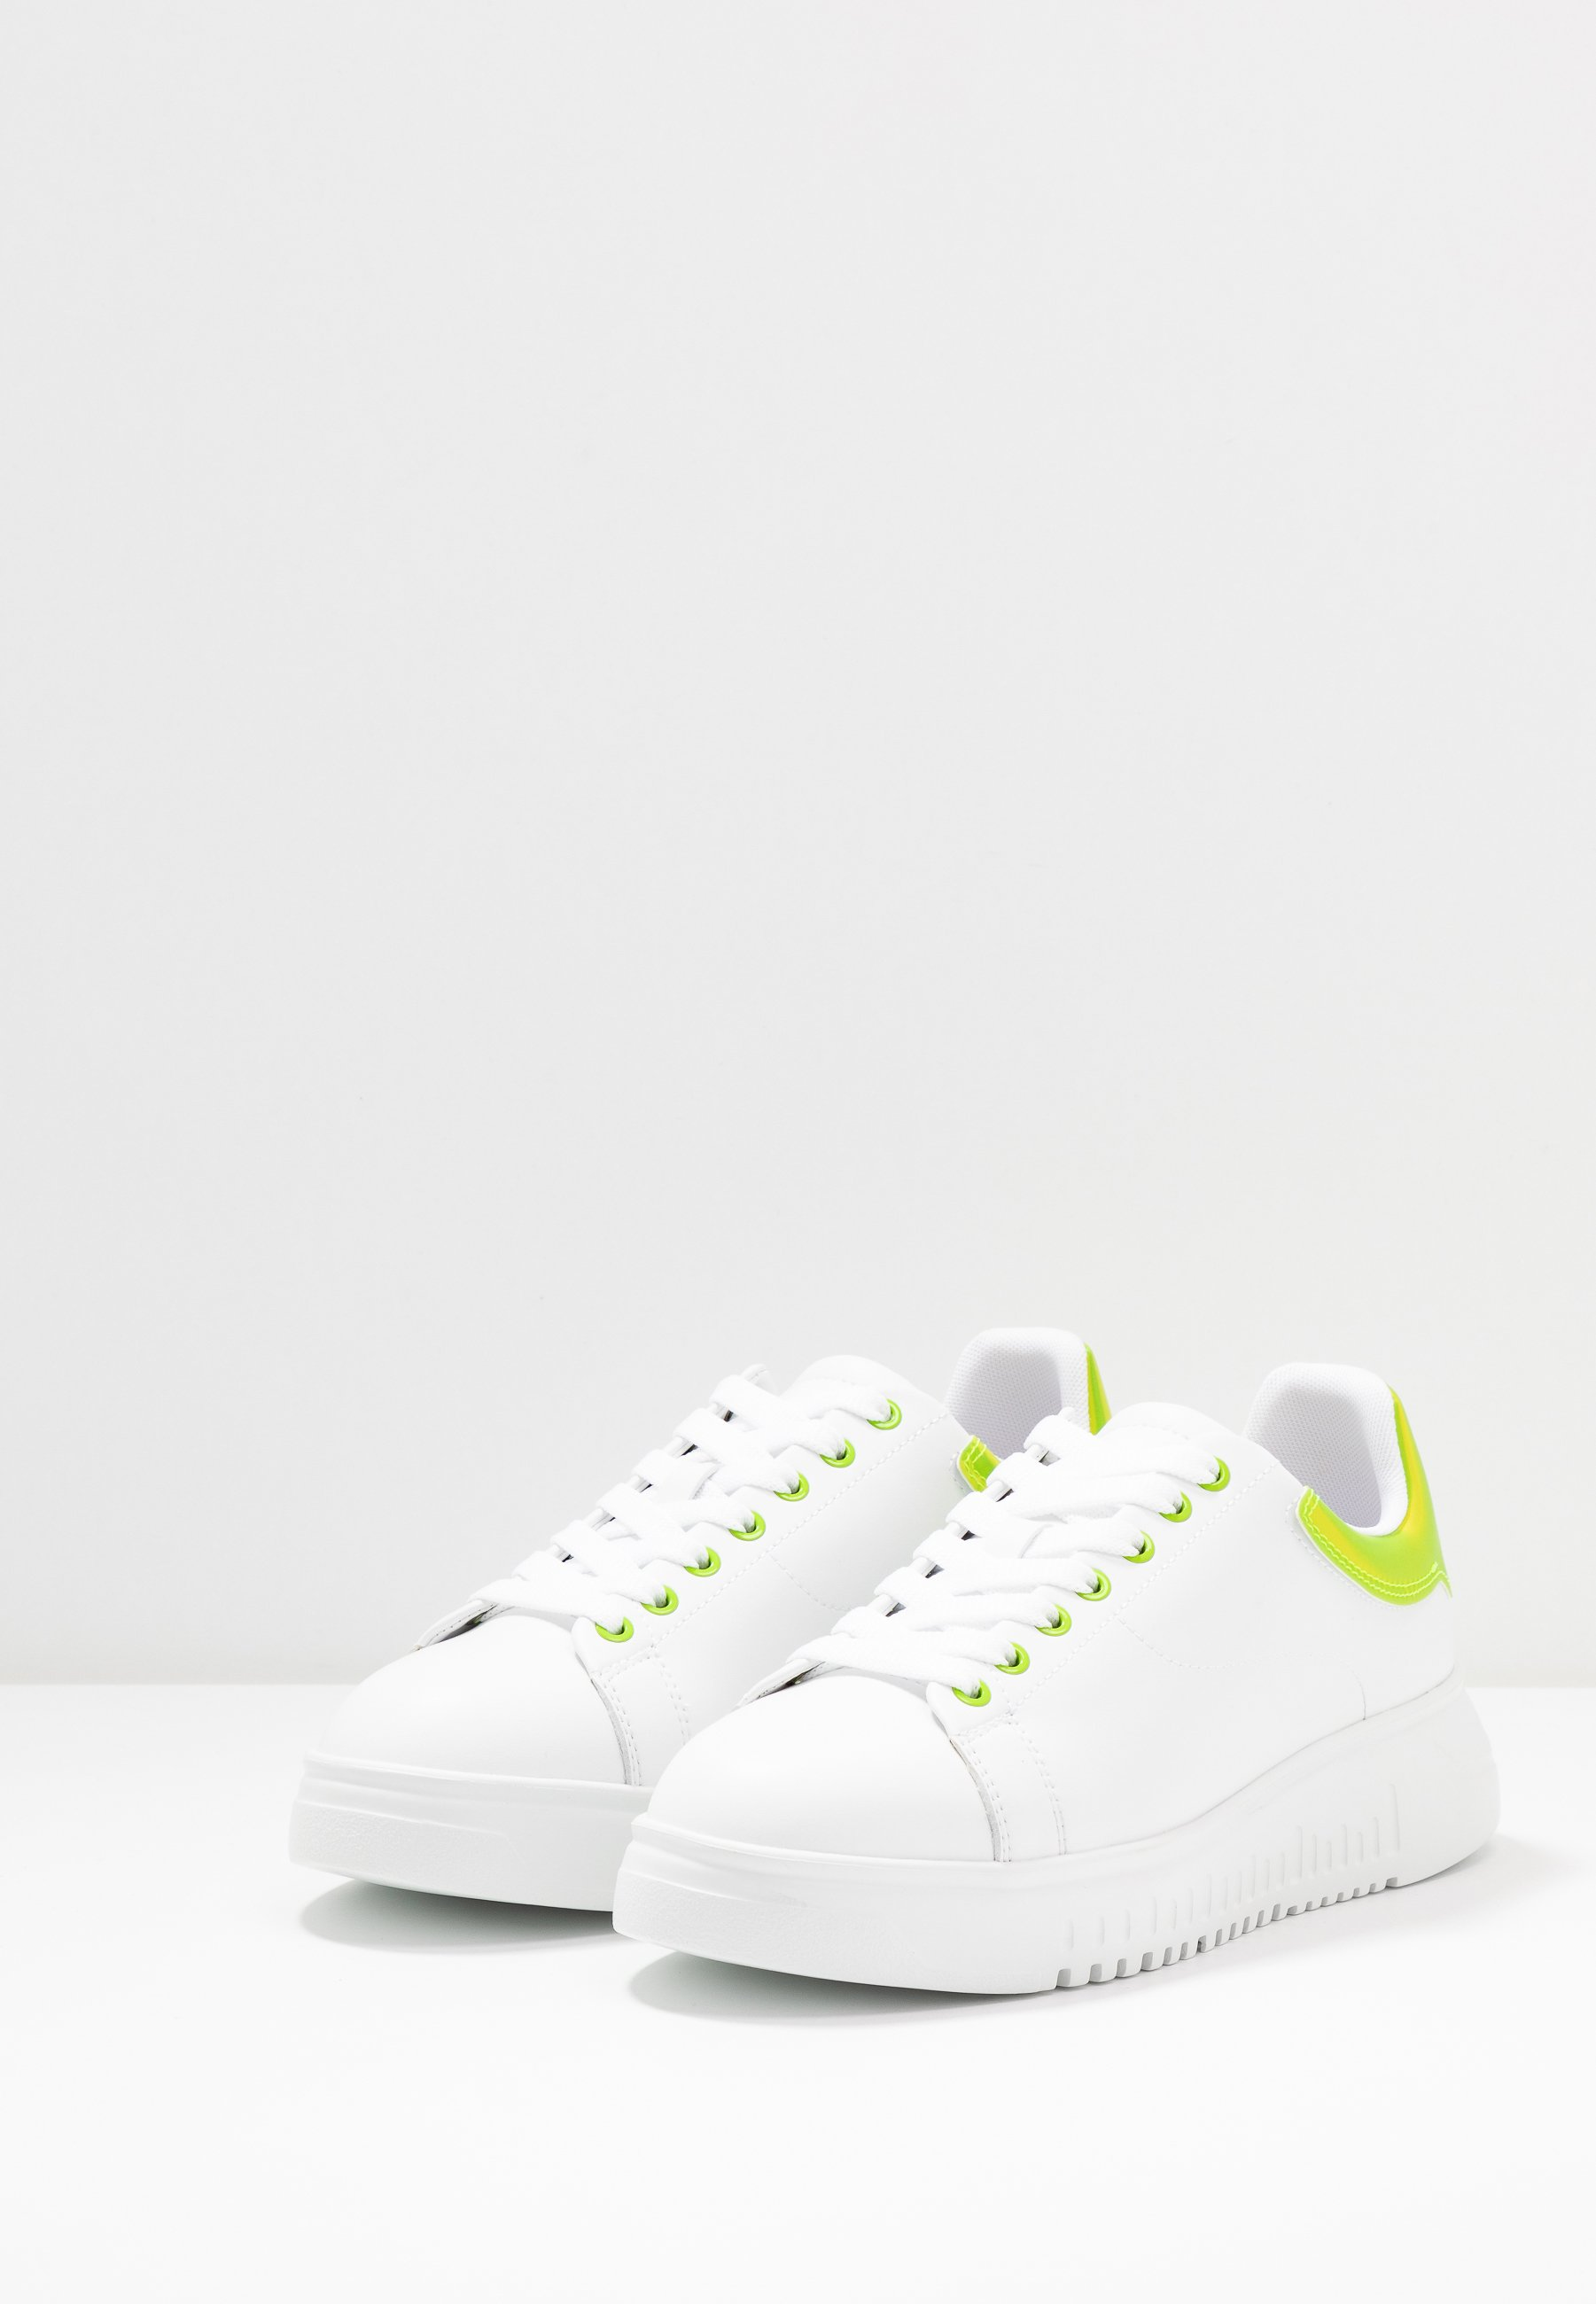 Emporio Armani Sneaker Low - Plaster/white/green Black Friday